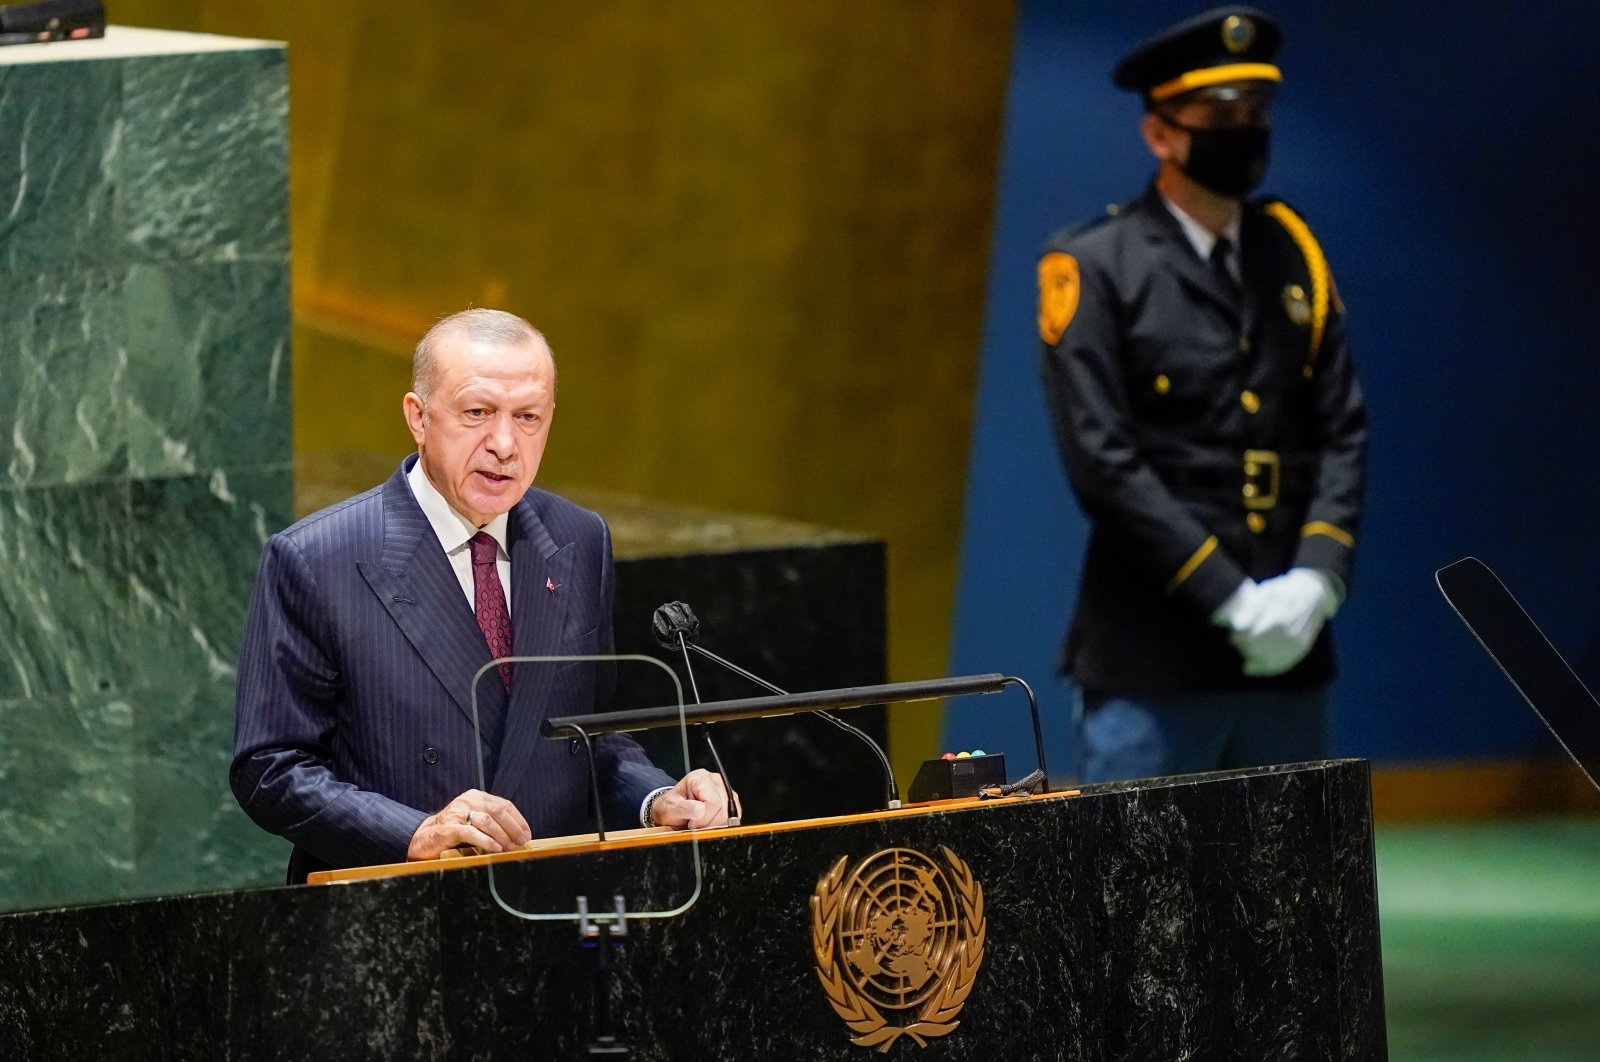 Turkish President Recep Tayyip Erdoğan speaks during the 76th Session of the General Assembly at U.N. Headquarters in New York on September 21, 2021. Mary Altaffer/Pool via REUTERS